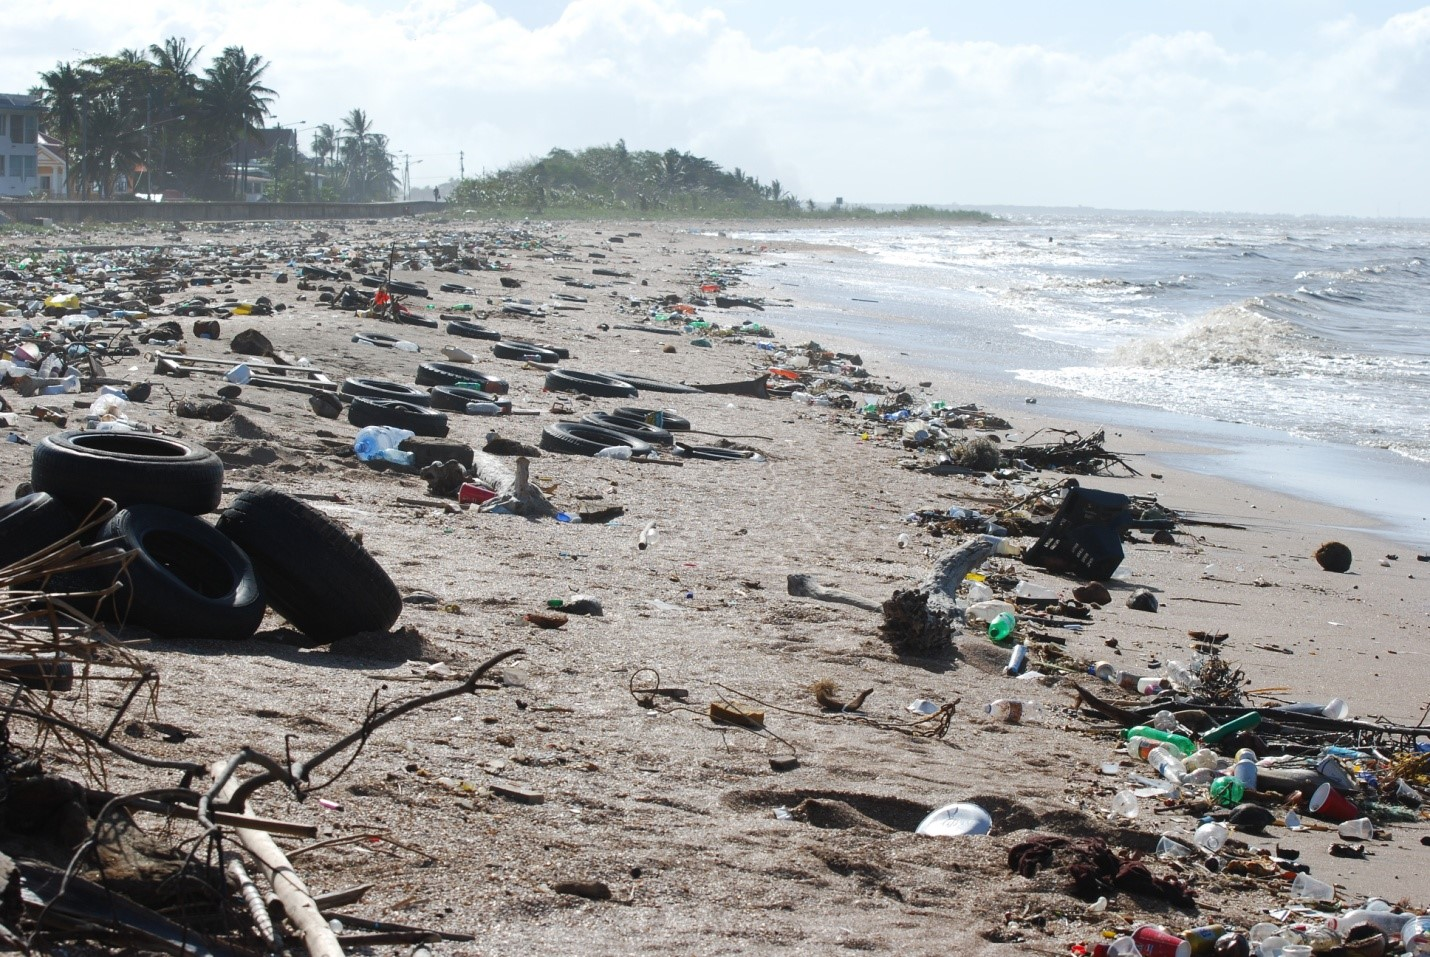 Littering a big cause for marine pollution